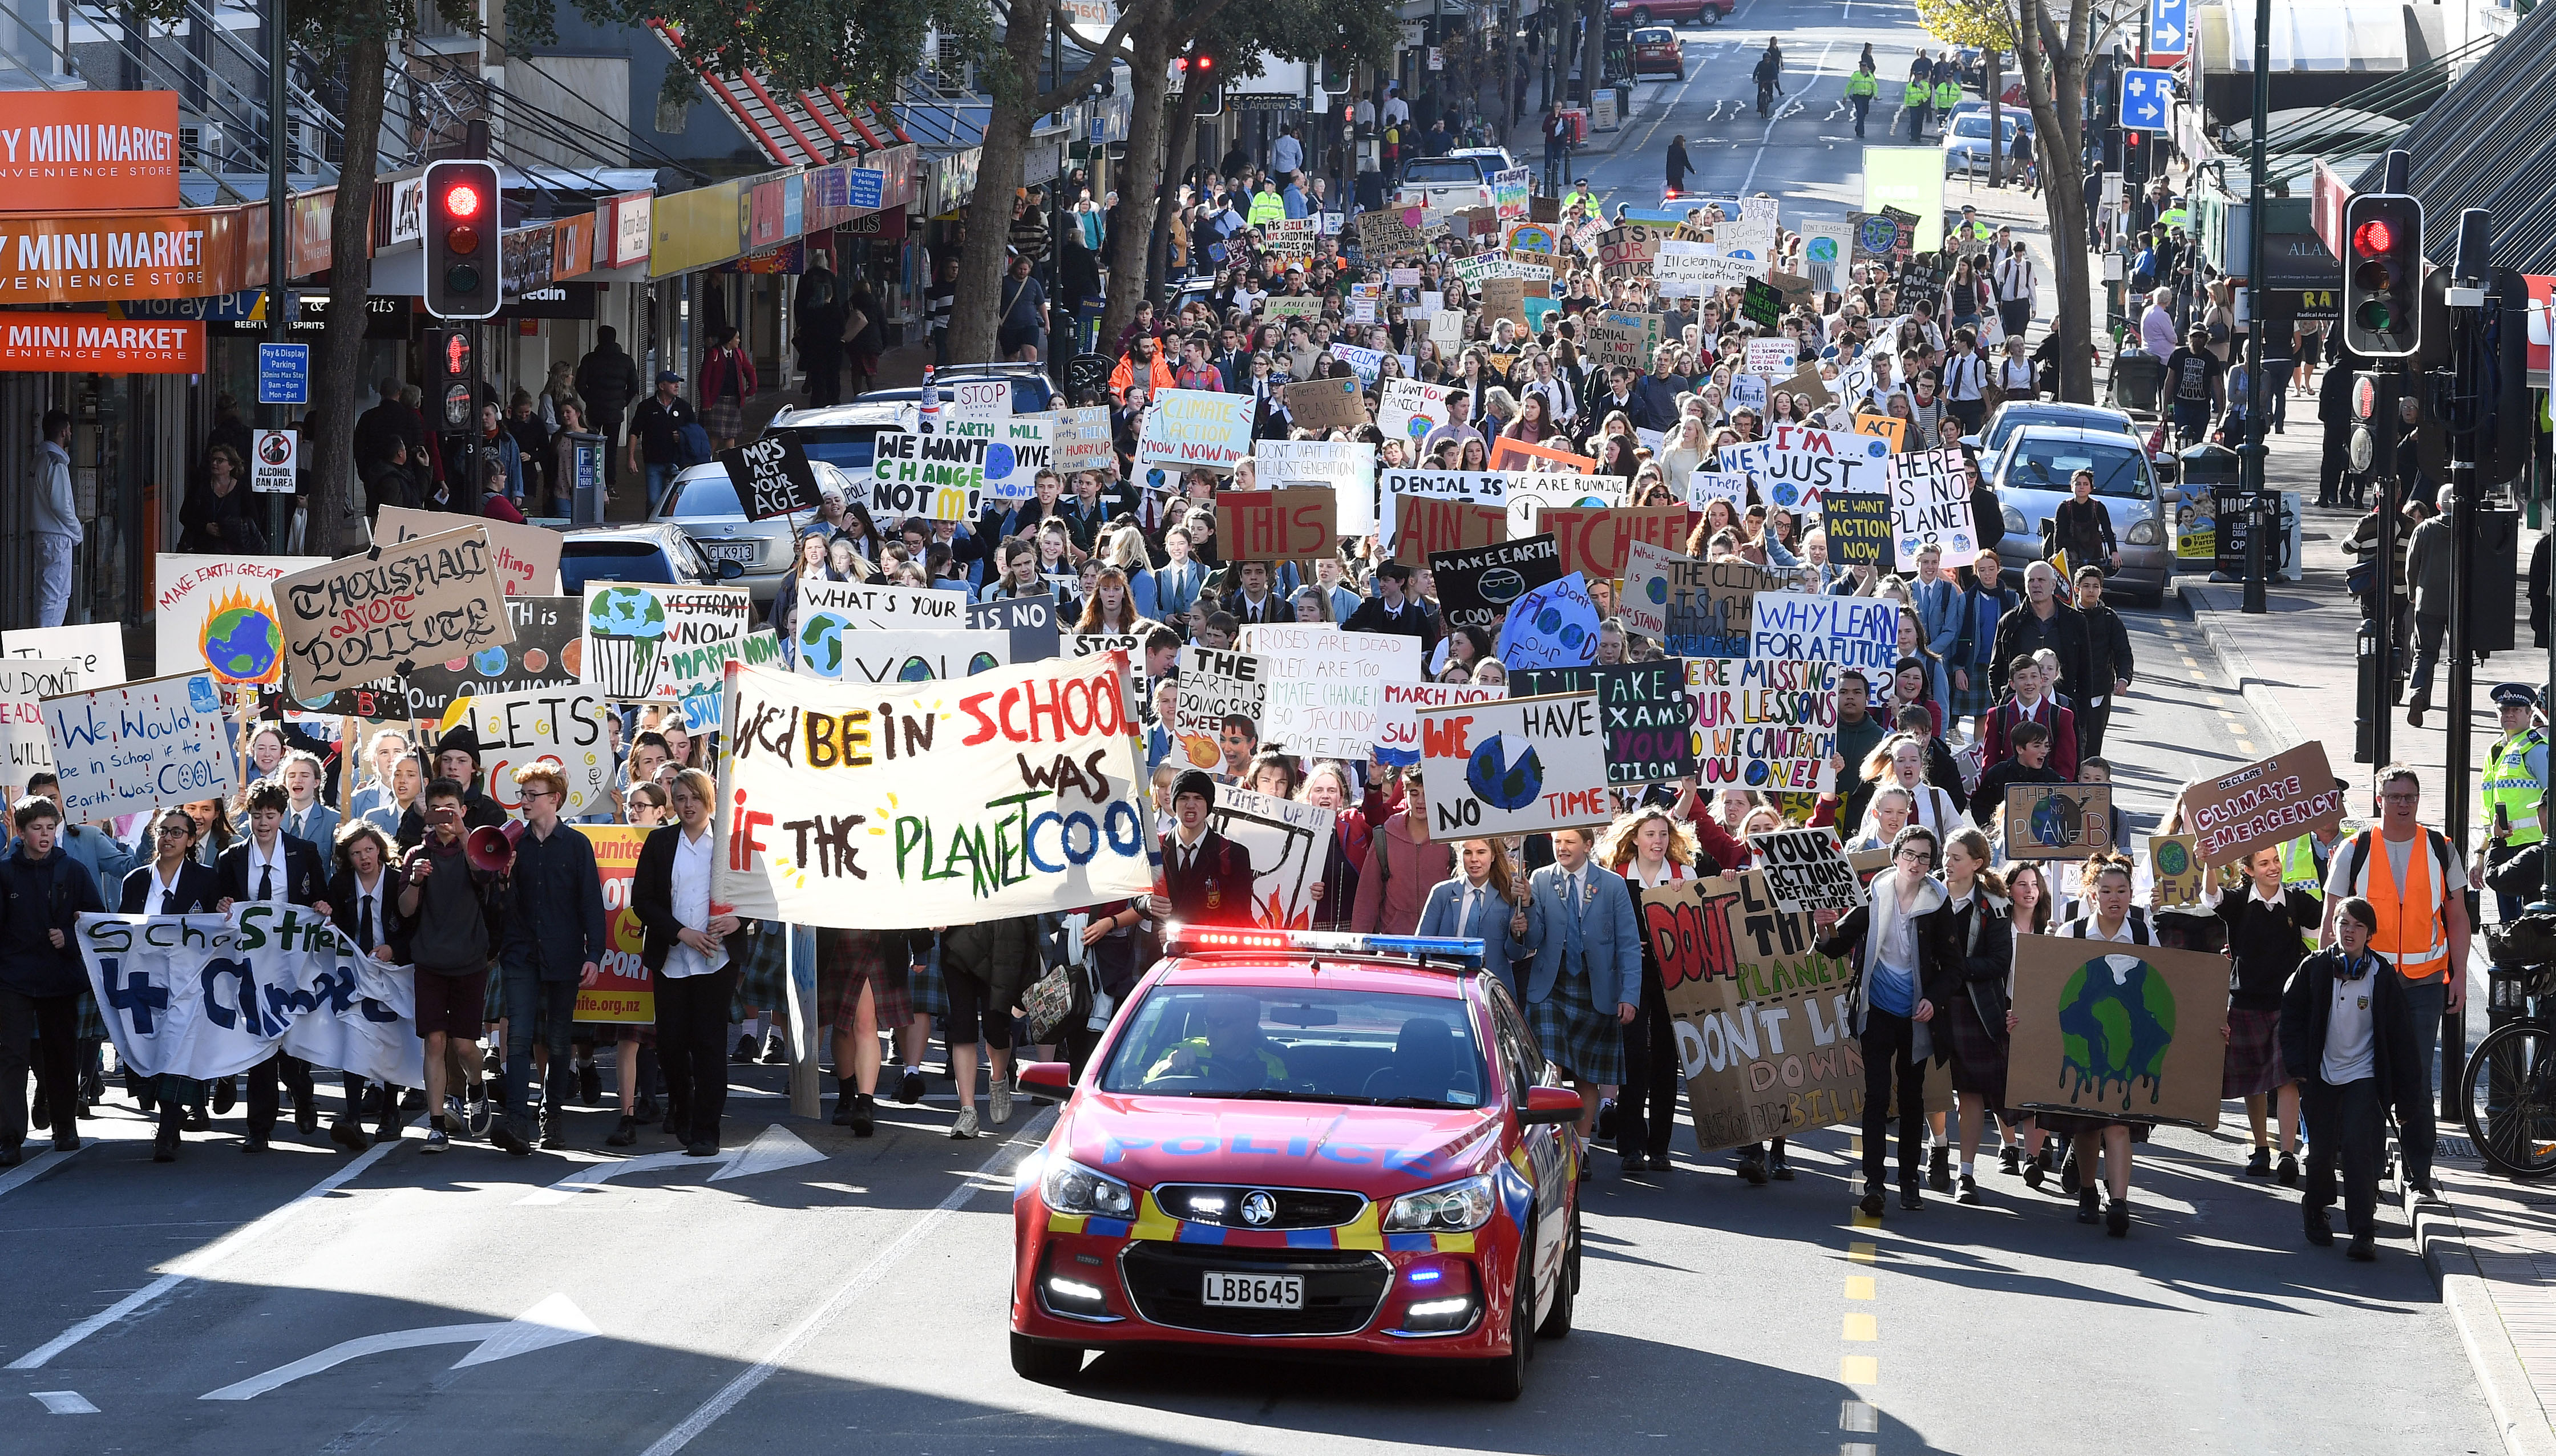 Students marching along George St towards the Octagon this afternoon. Photo: Stephen Jaquiery